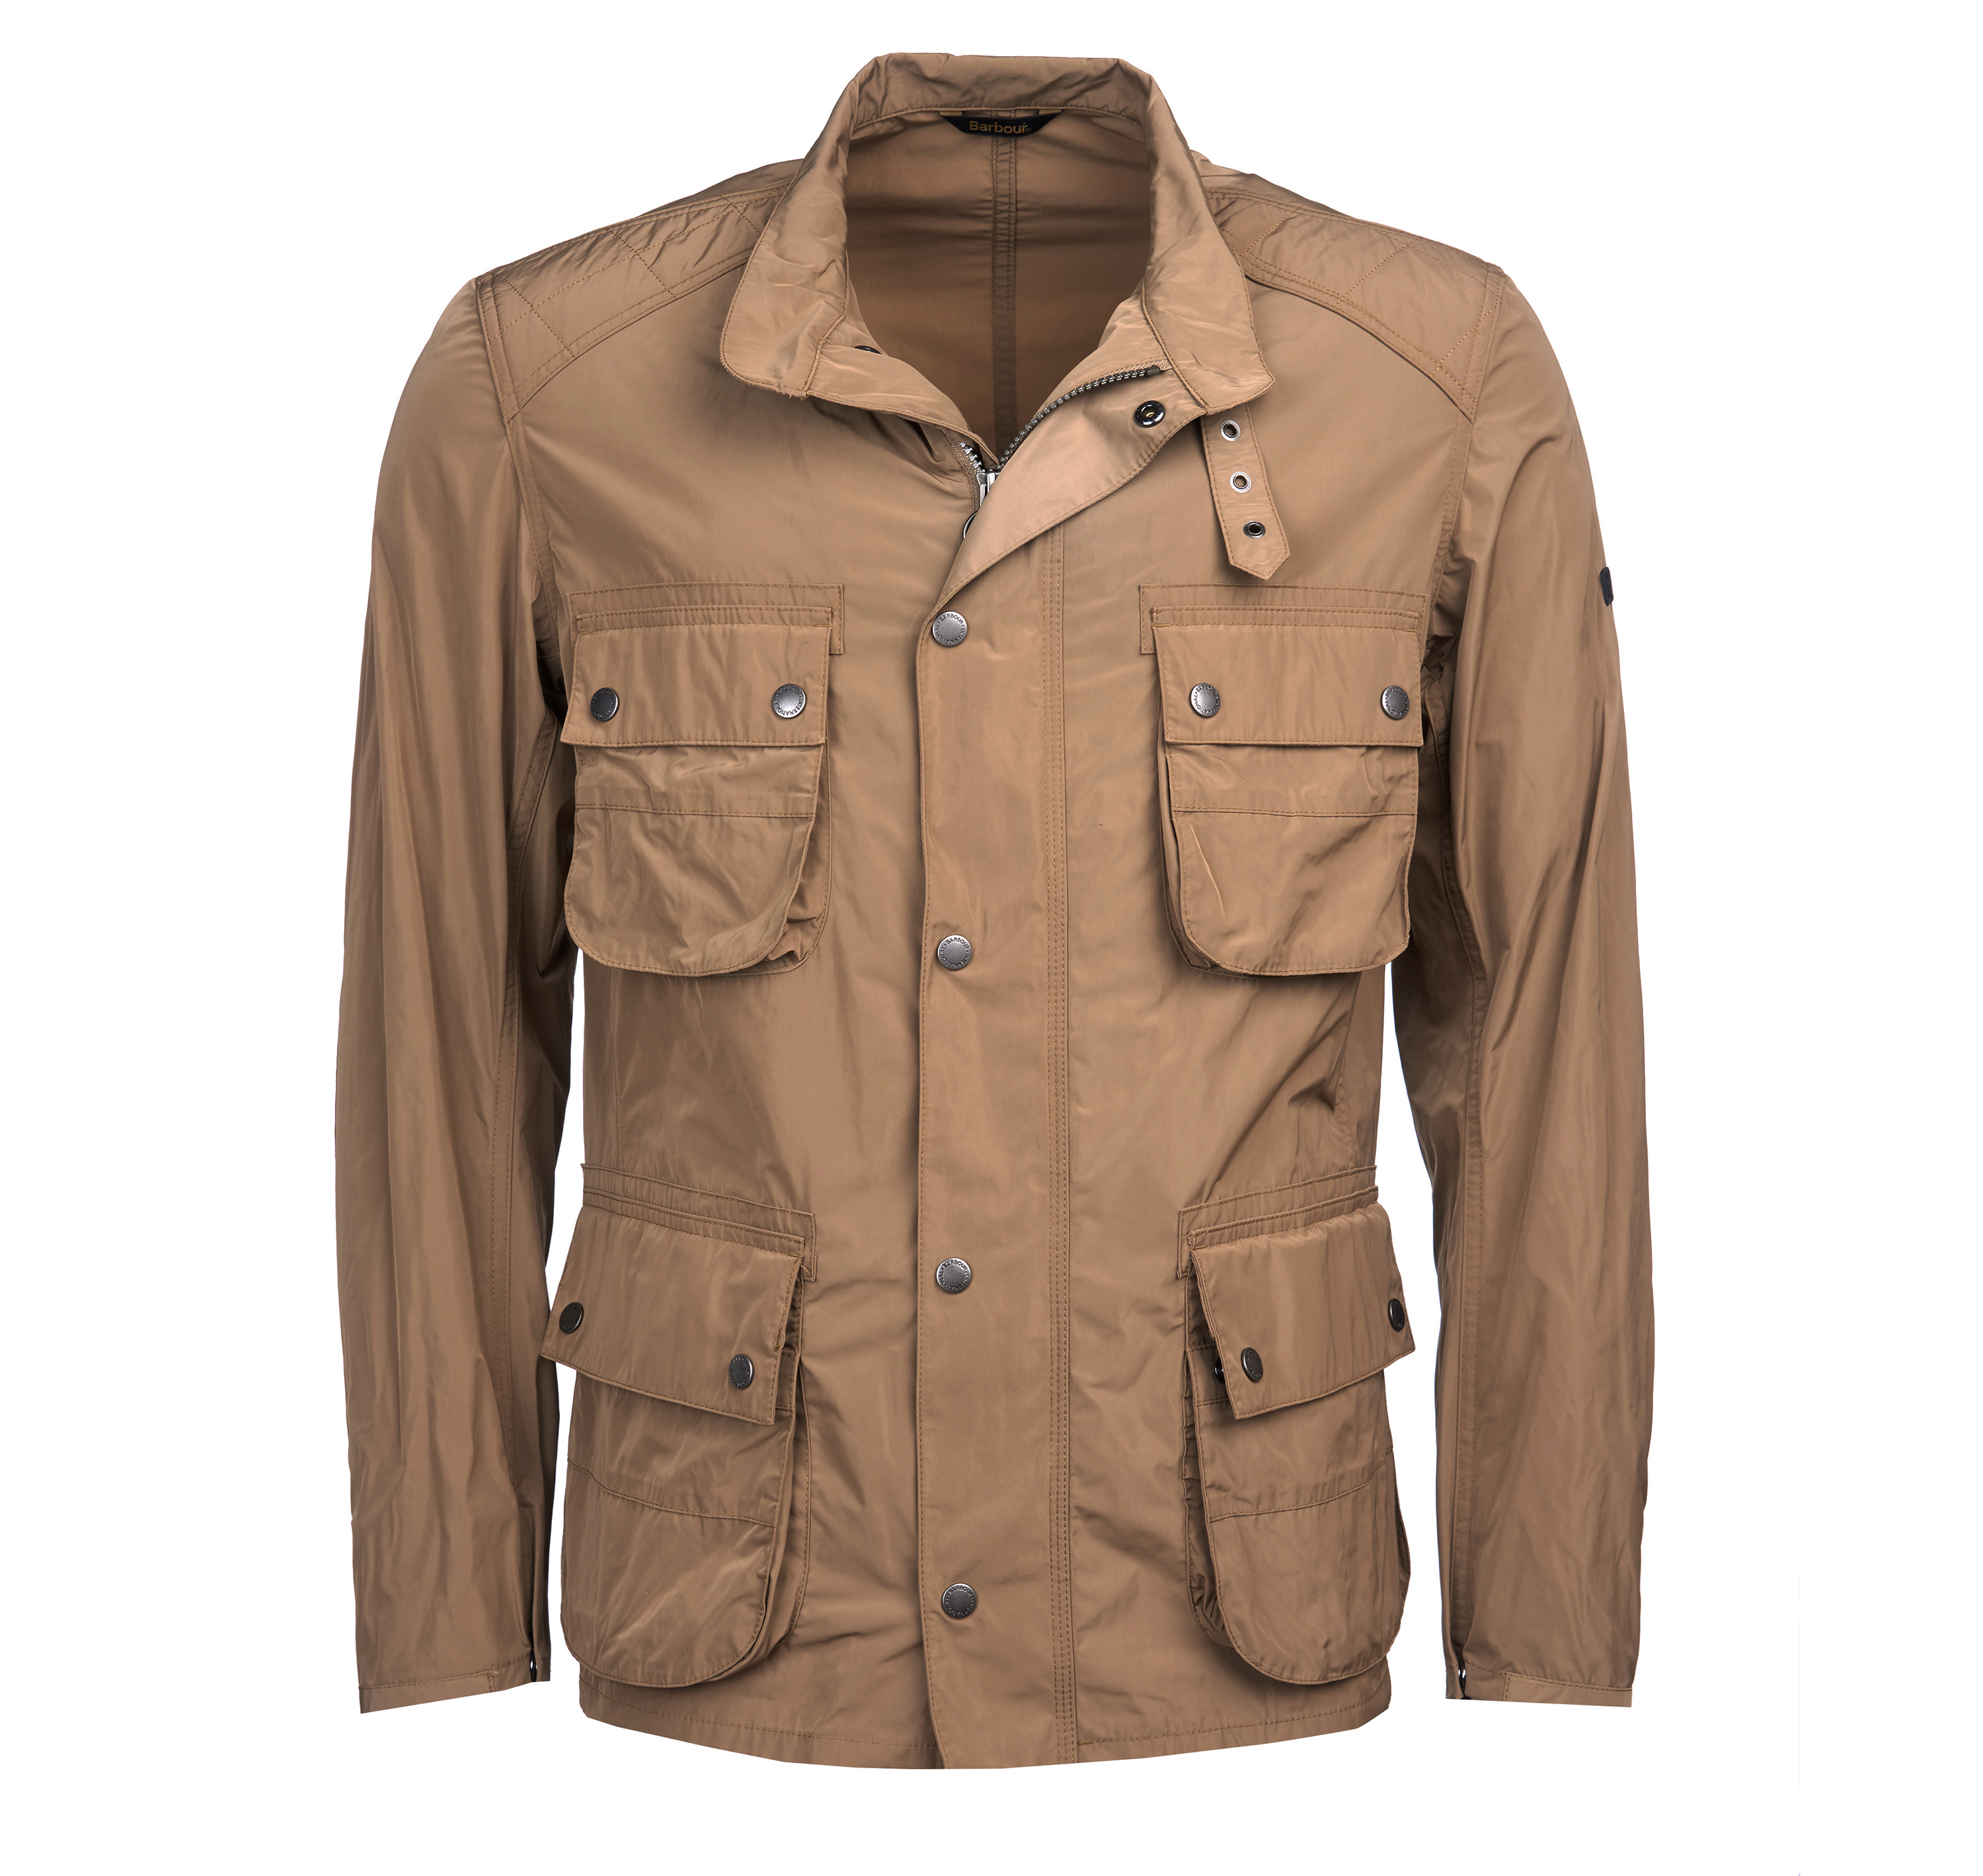 B.Intl Weir Casual Jacket Military brown